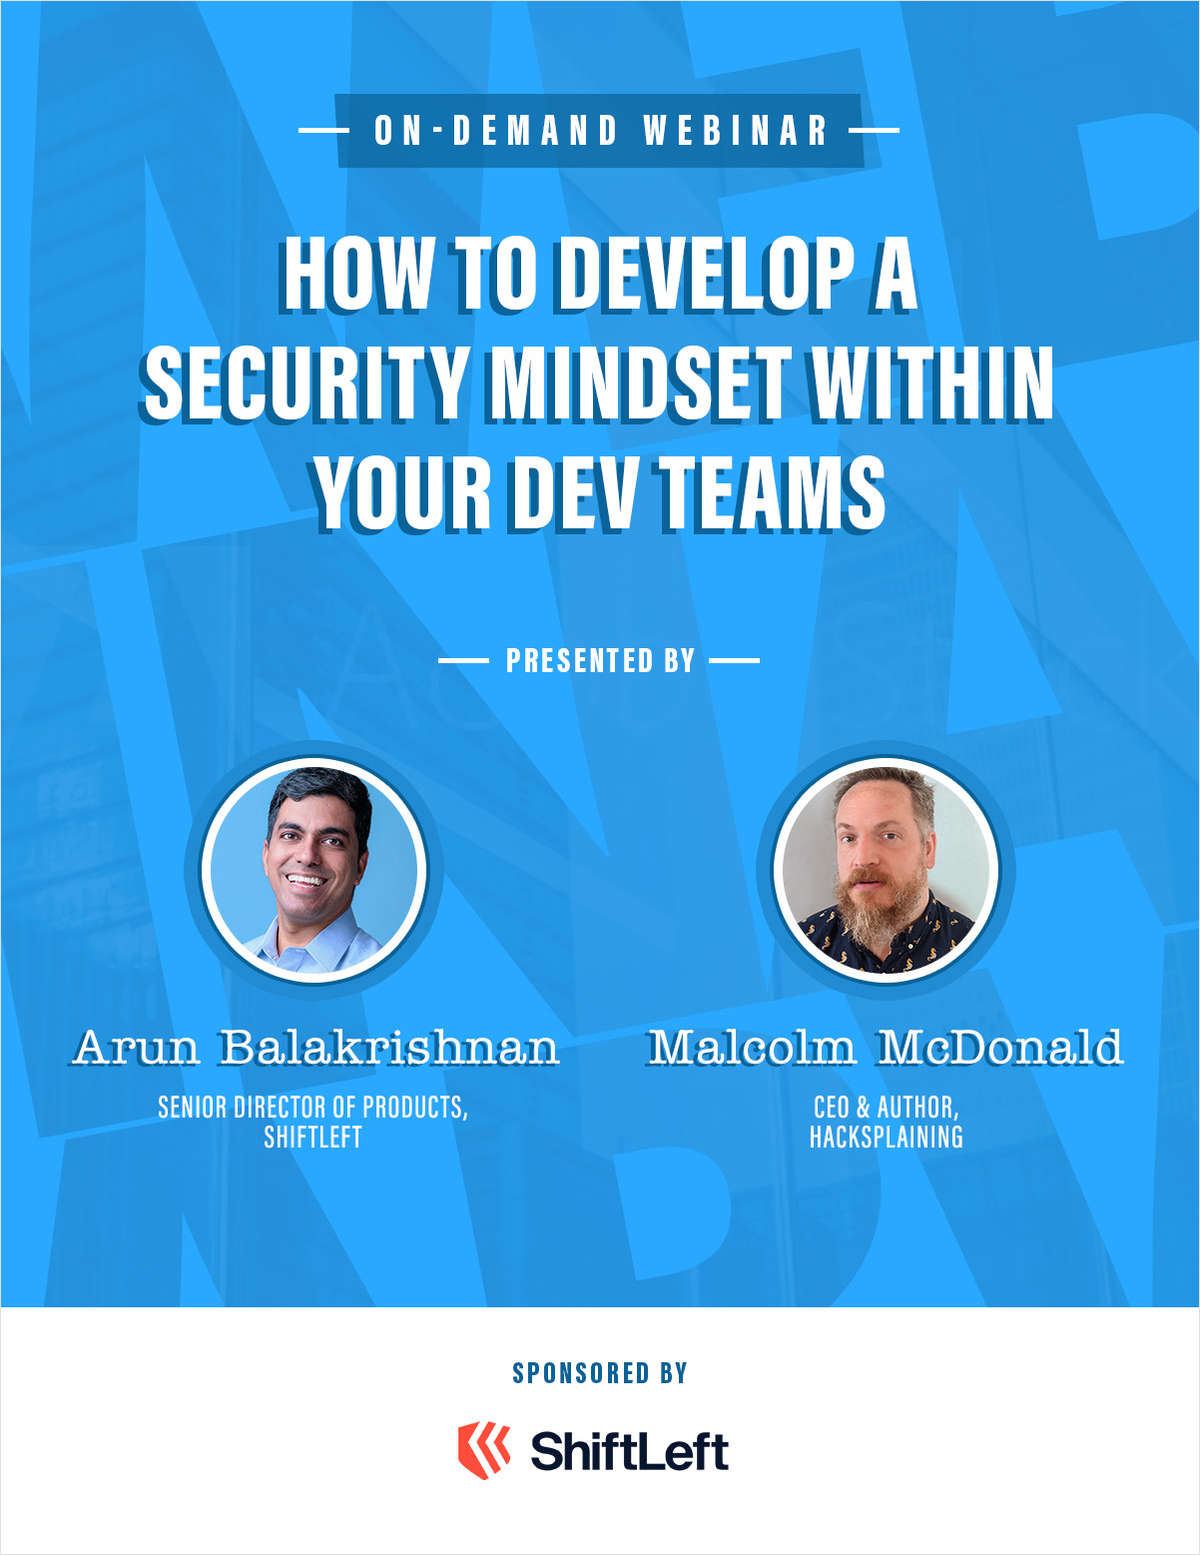 How to develop a security mindset within your dev teams